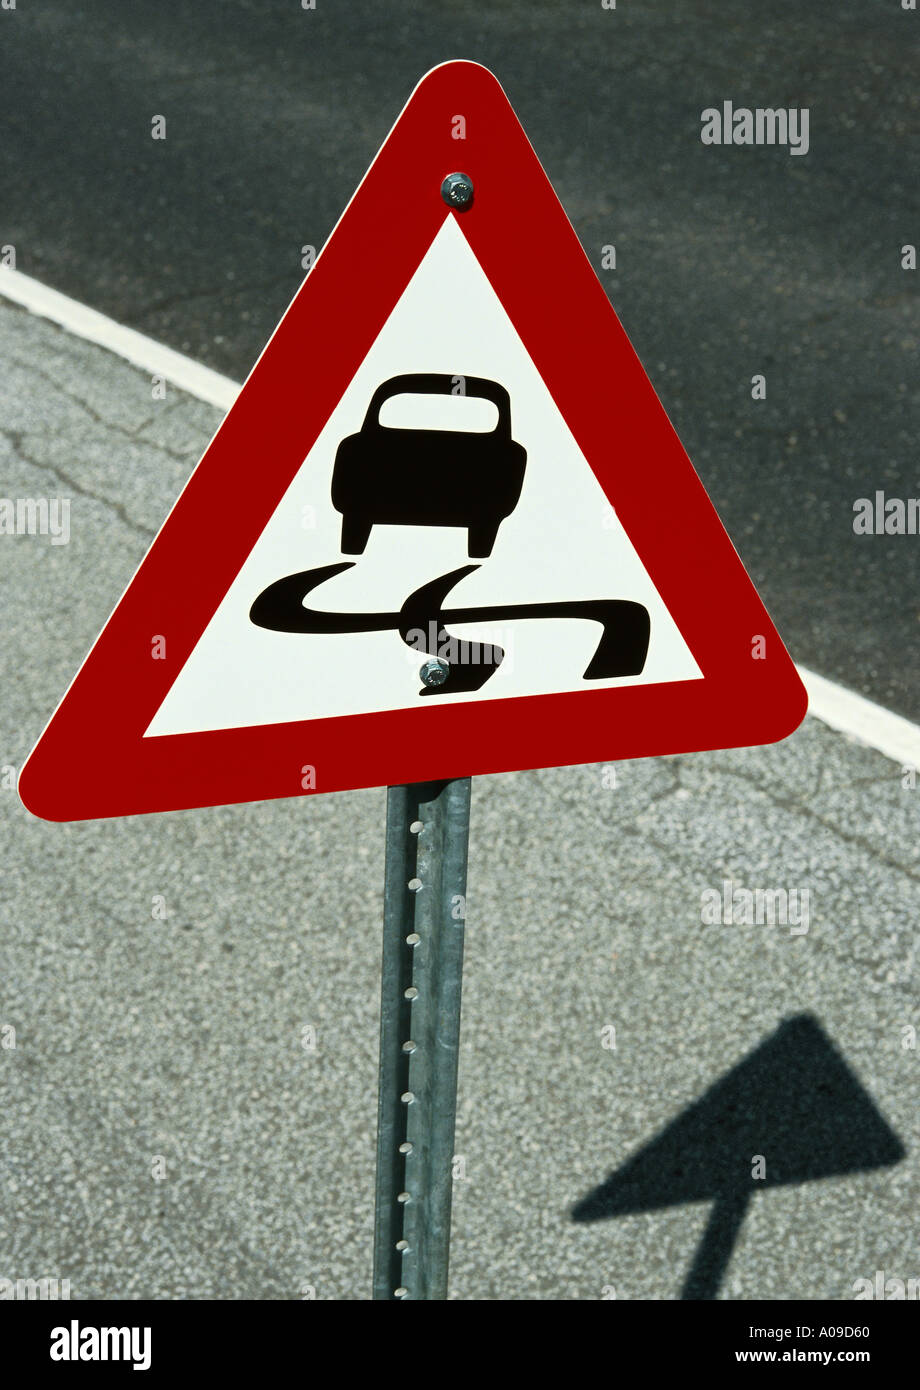 A red white and black triangular slippery road sign on a metal post situated on the paved shoulder of a highway - Stock Image